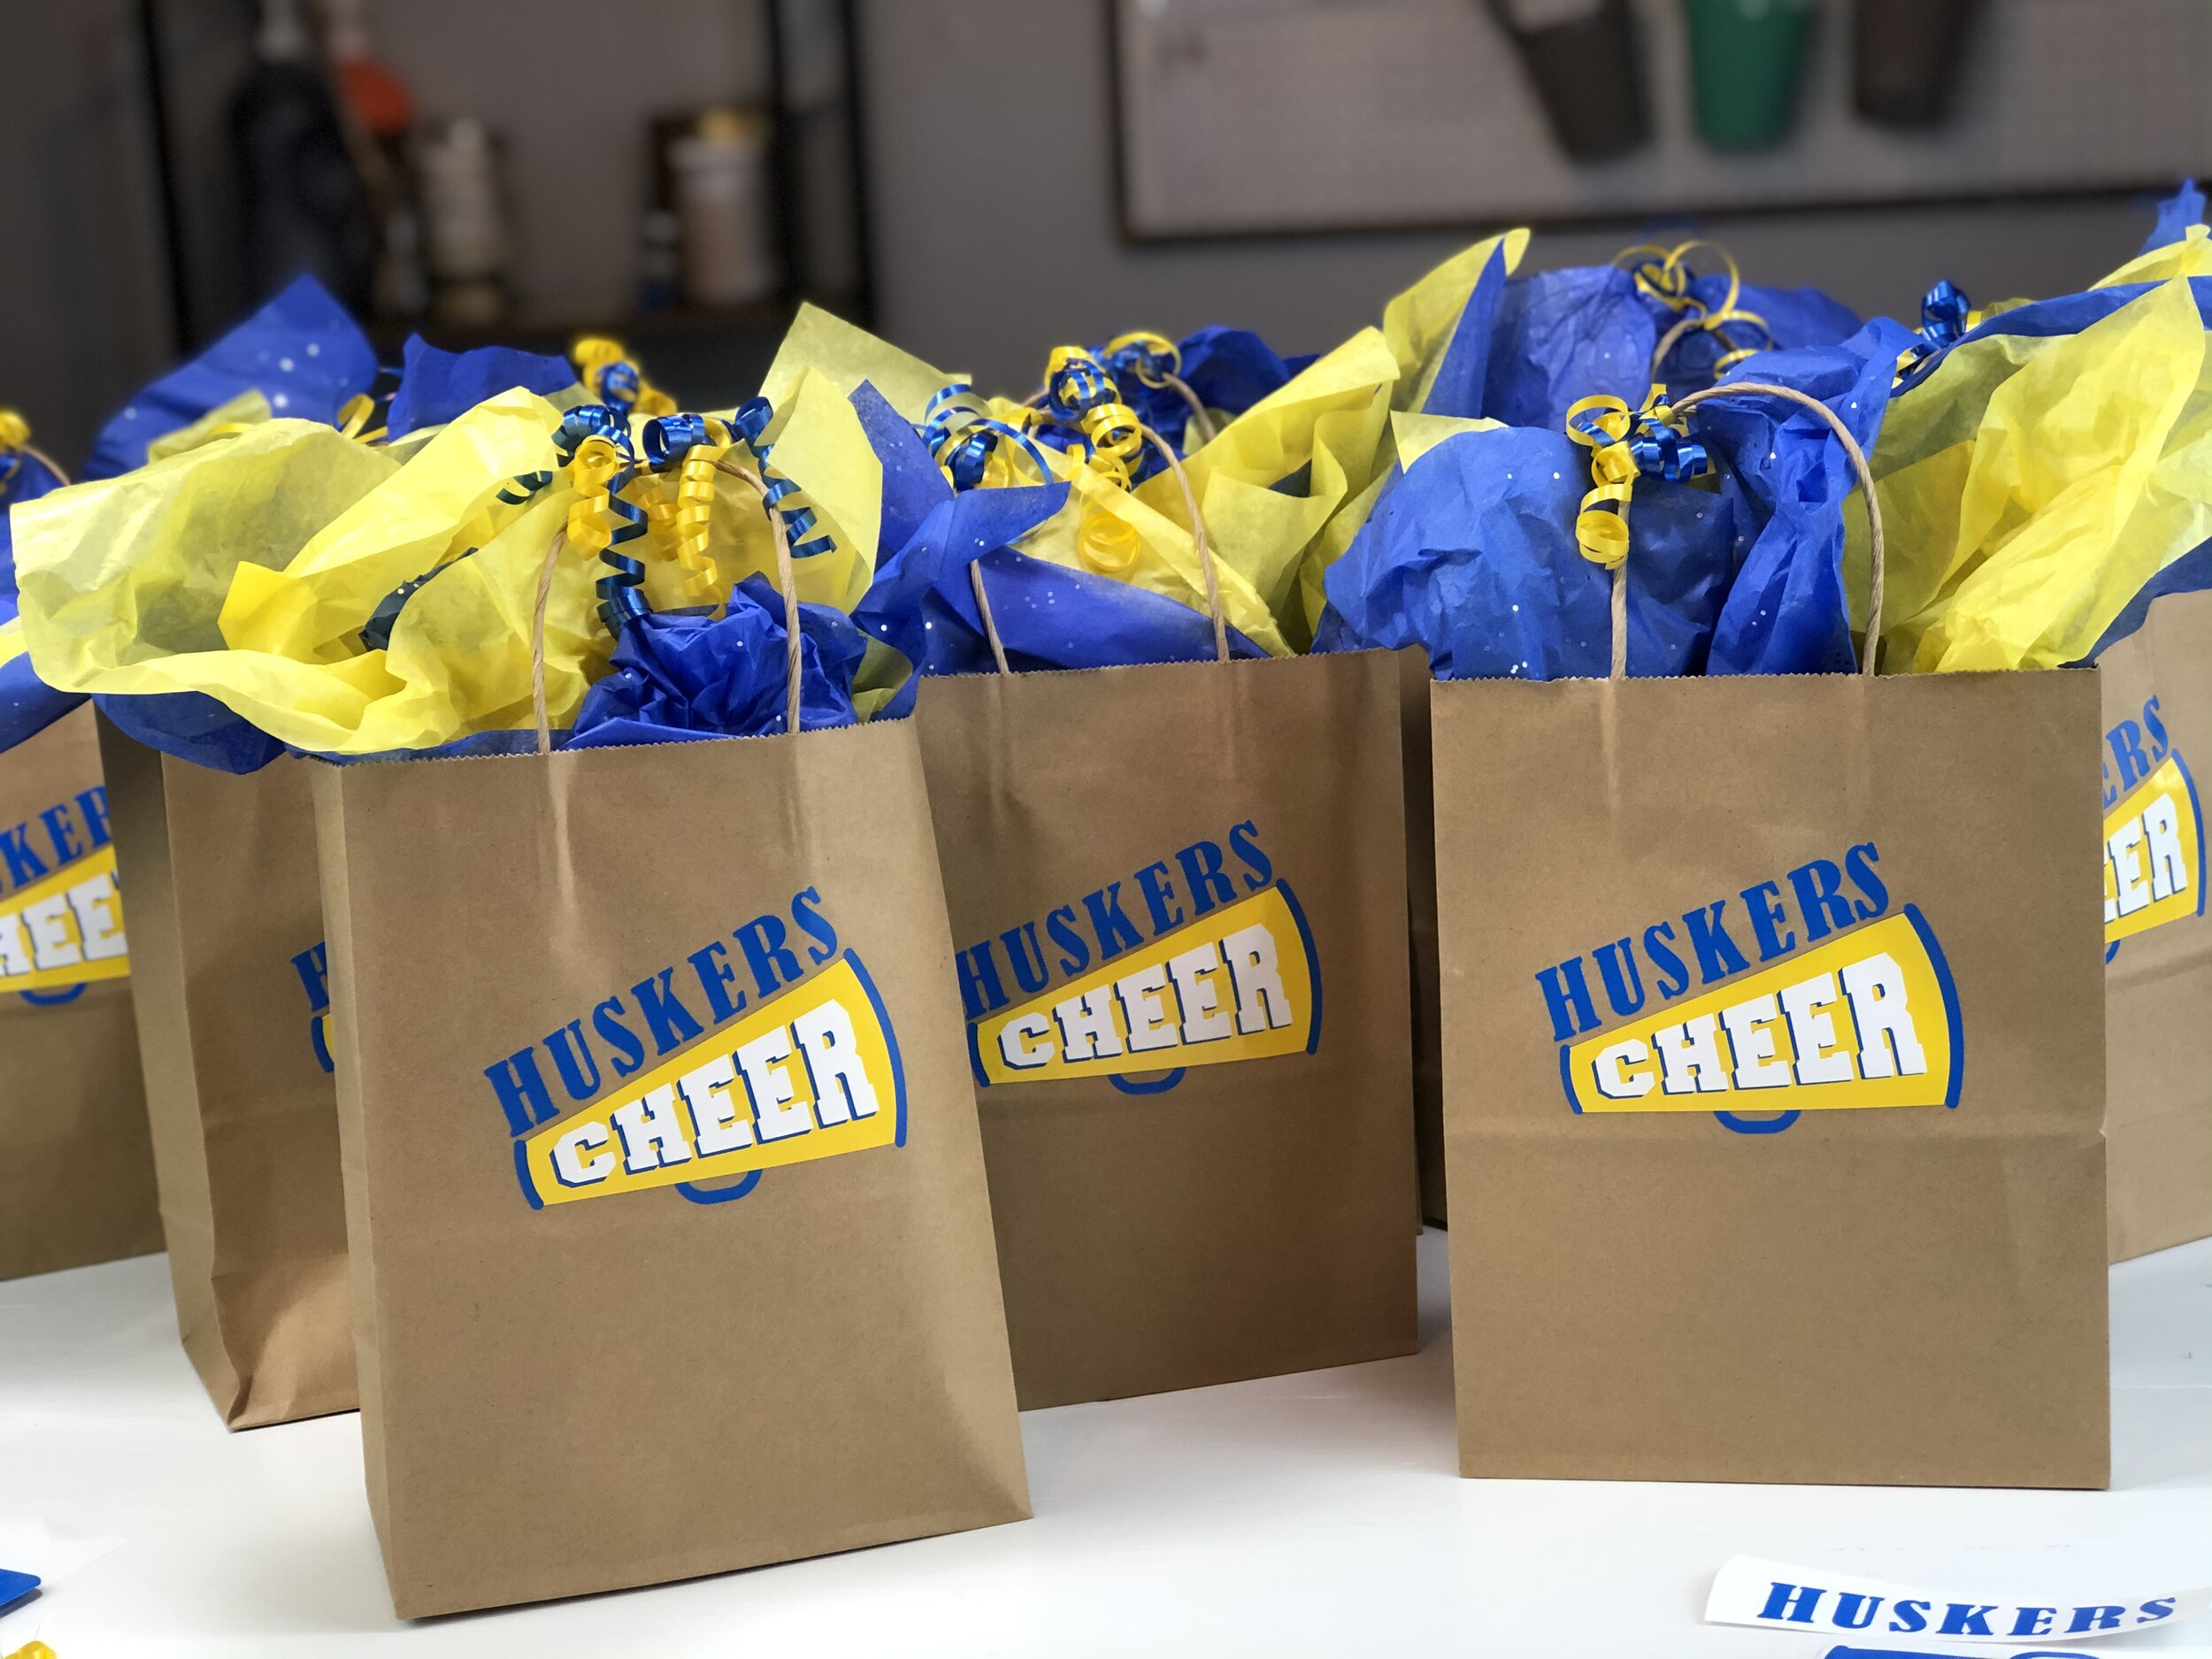 Cheerleader gift bags that are quick, easy, and inexpensive. Put together cute pampered gift bags for cheer appreciation gifts for the end of the season. Use your Cricut to make personalized vinyl decals.